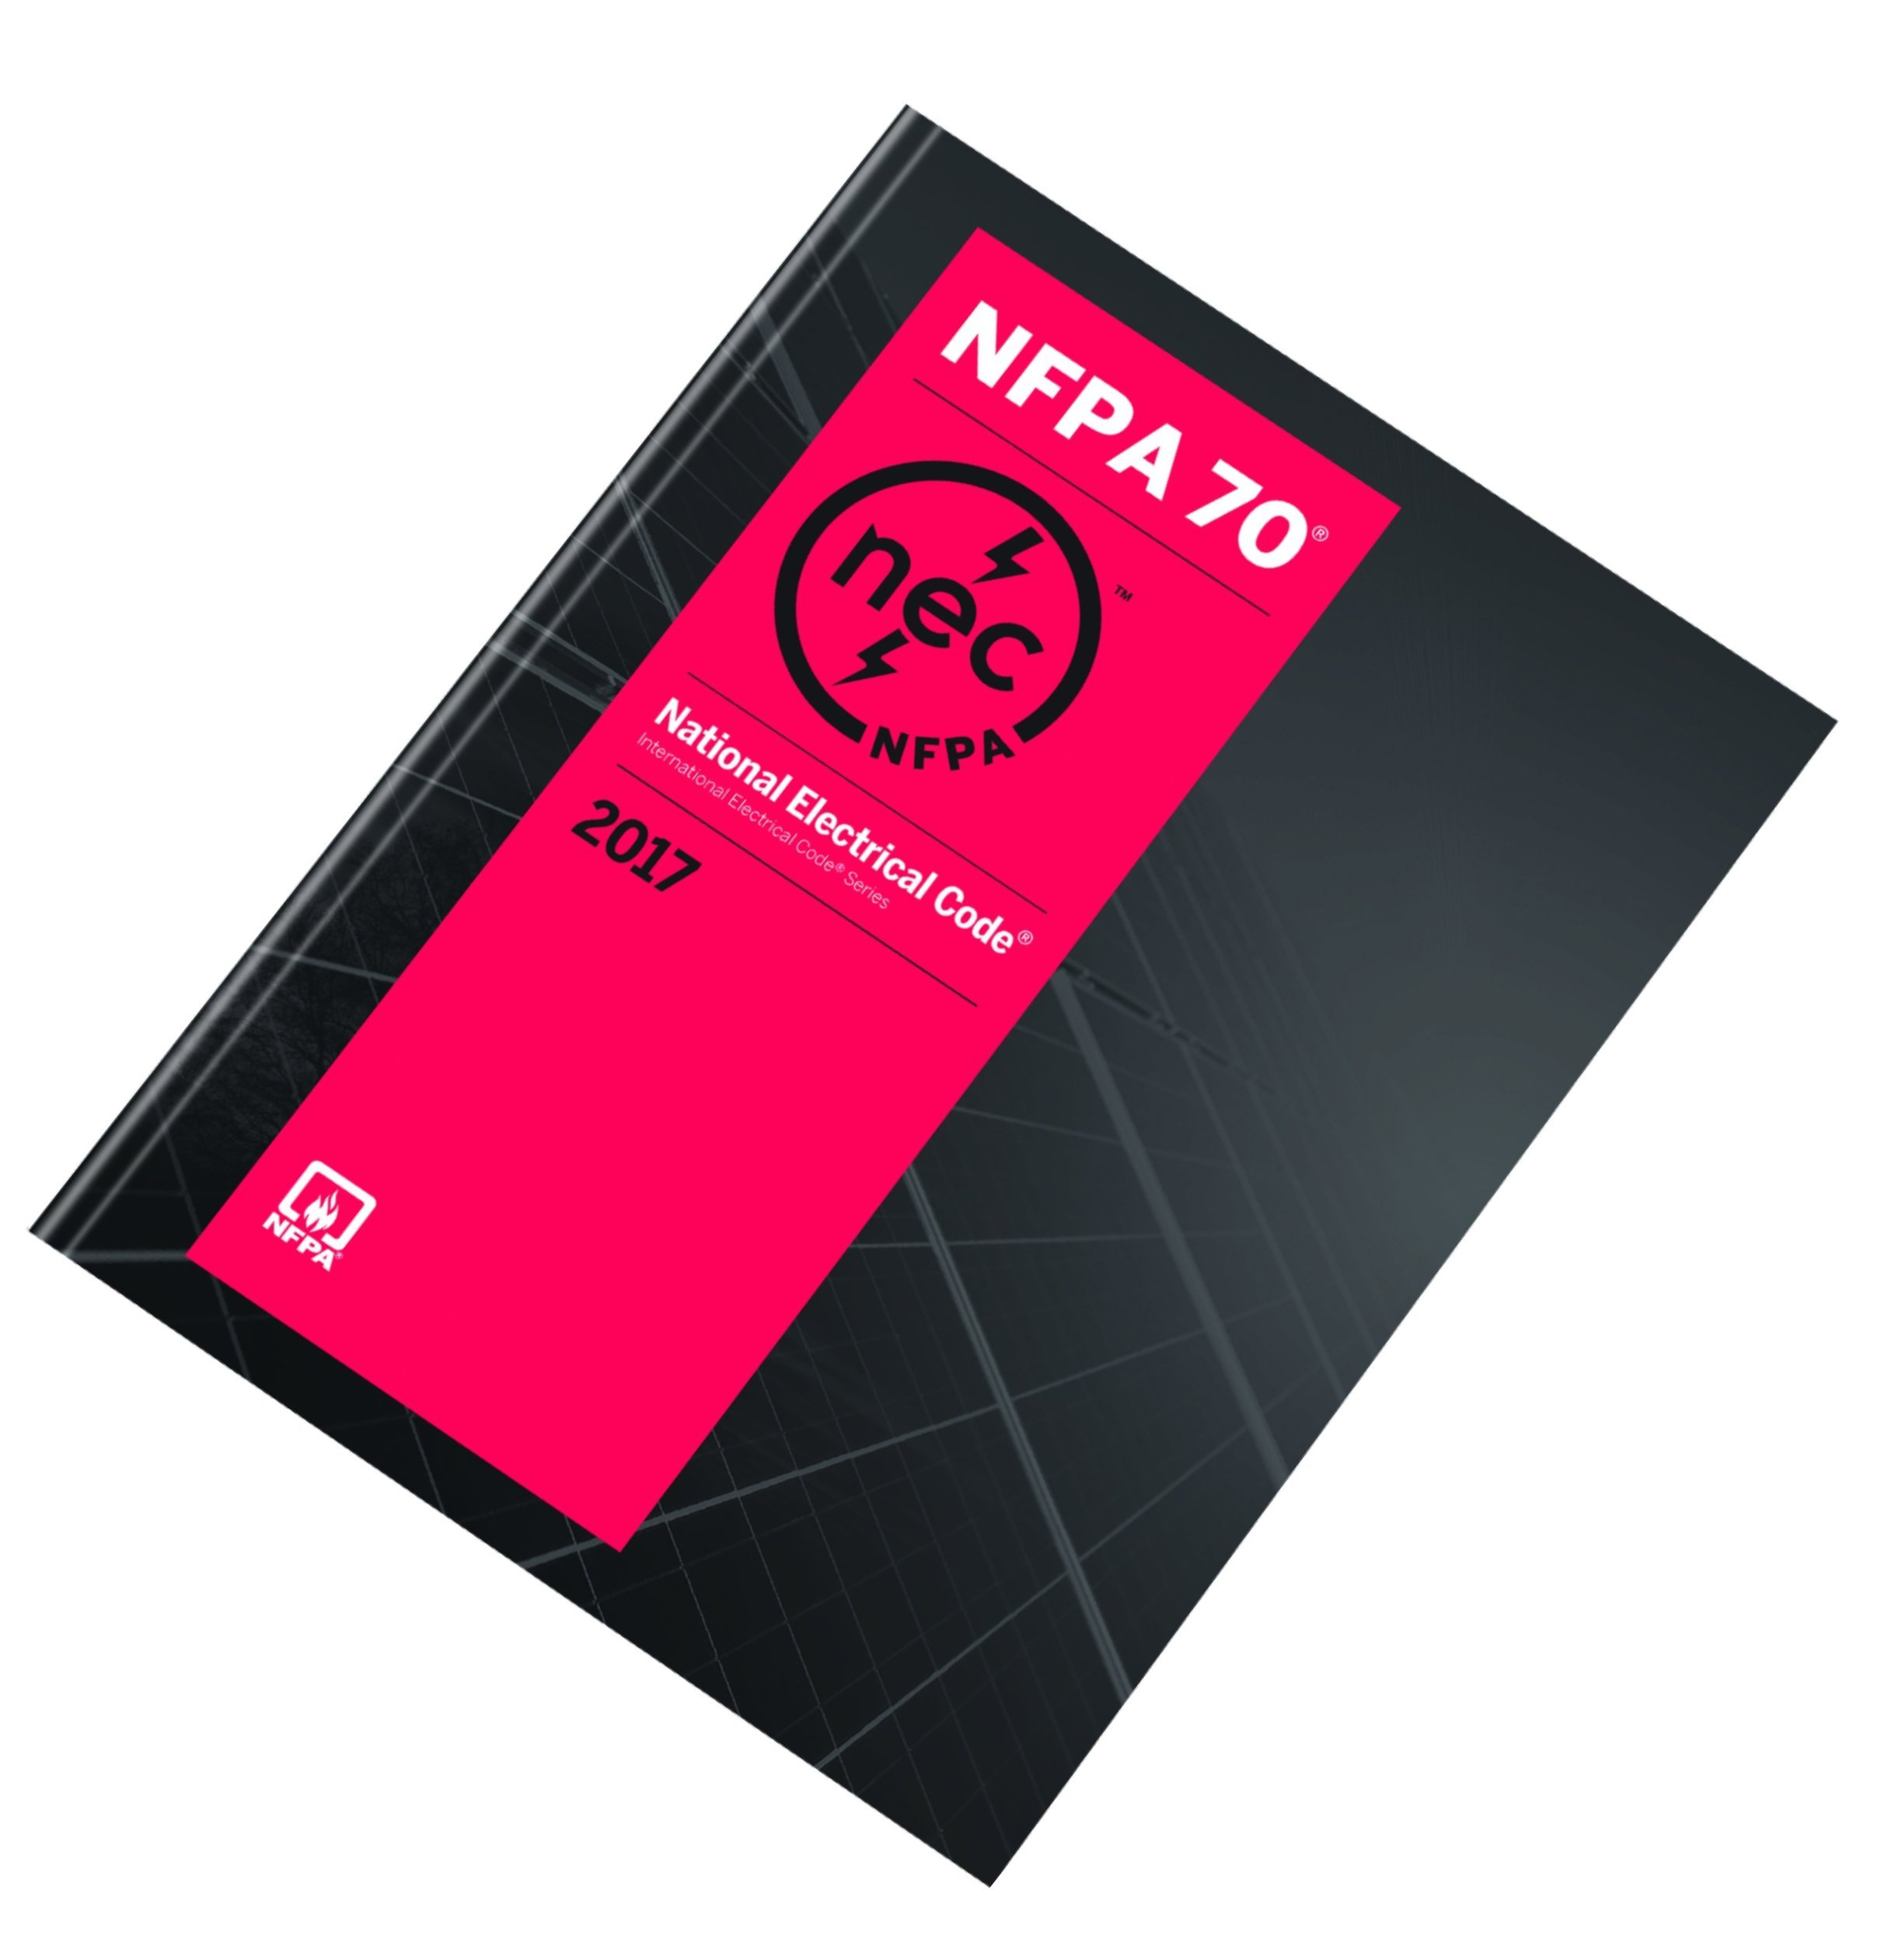 NFPA 70 2017 : National Electrical Code (NEC) Paperback (Softbound) and Index Tabs, by NFPA, 2017 Edition, Set